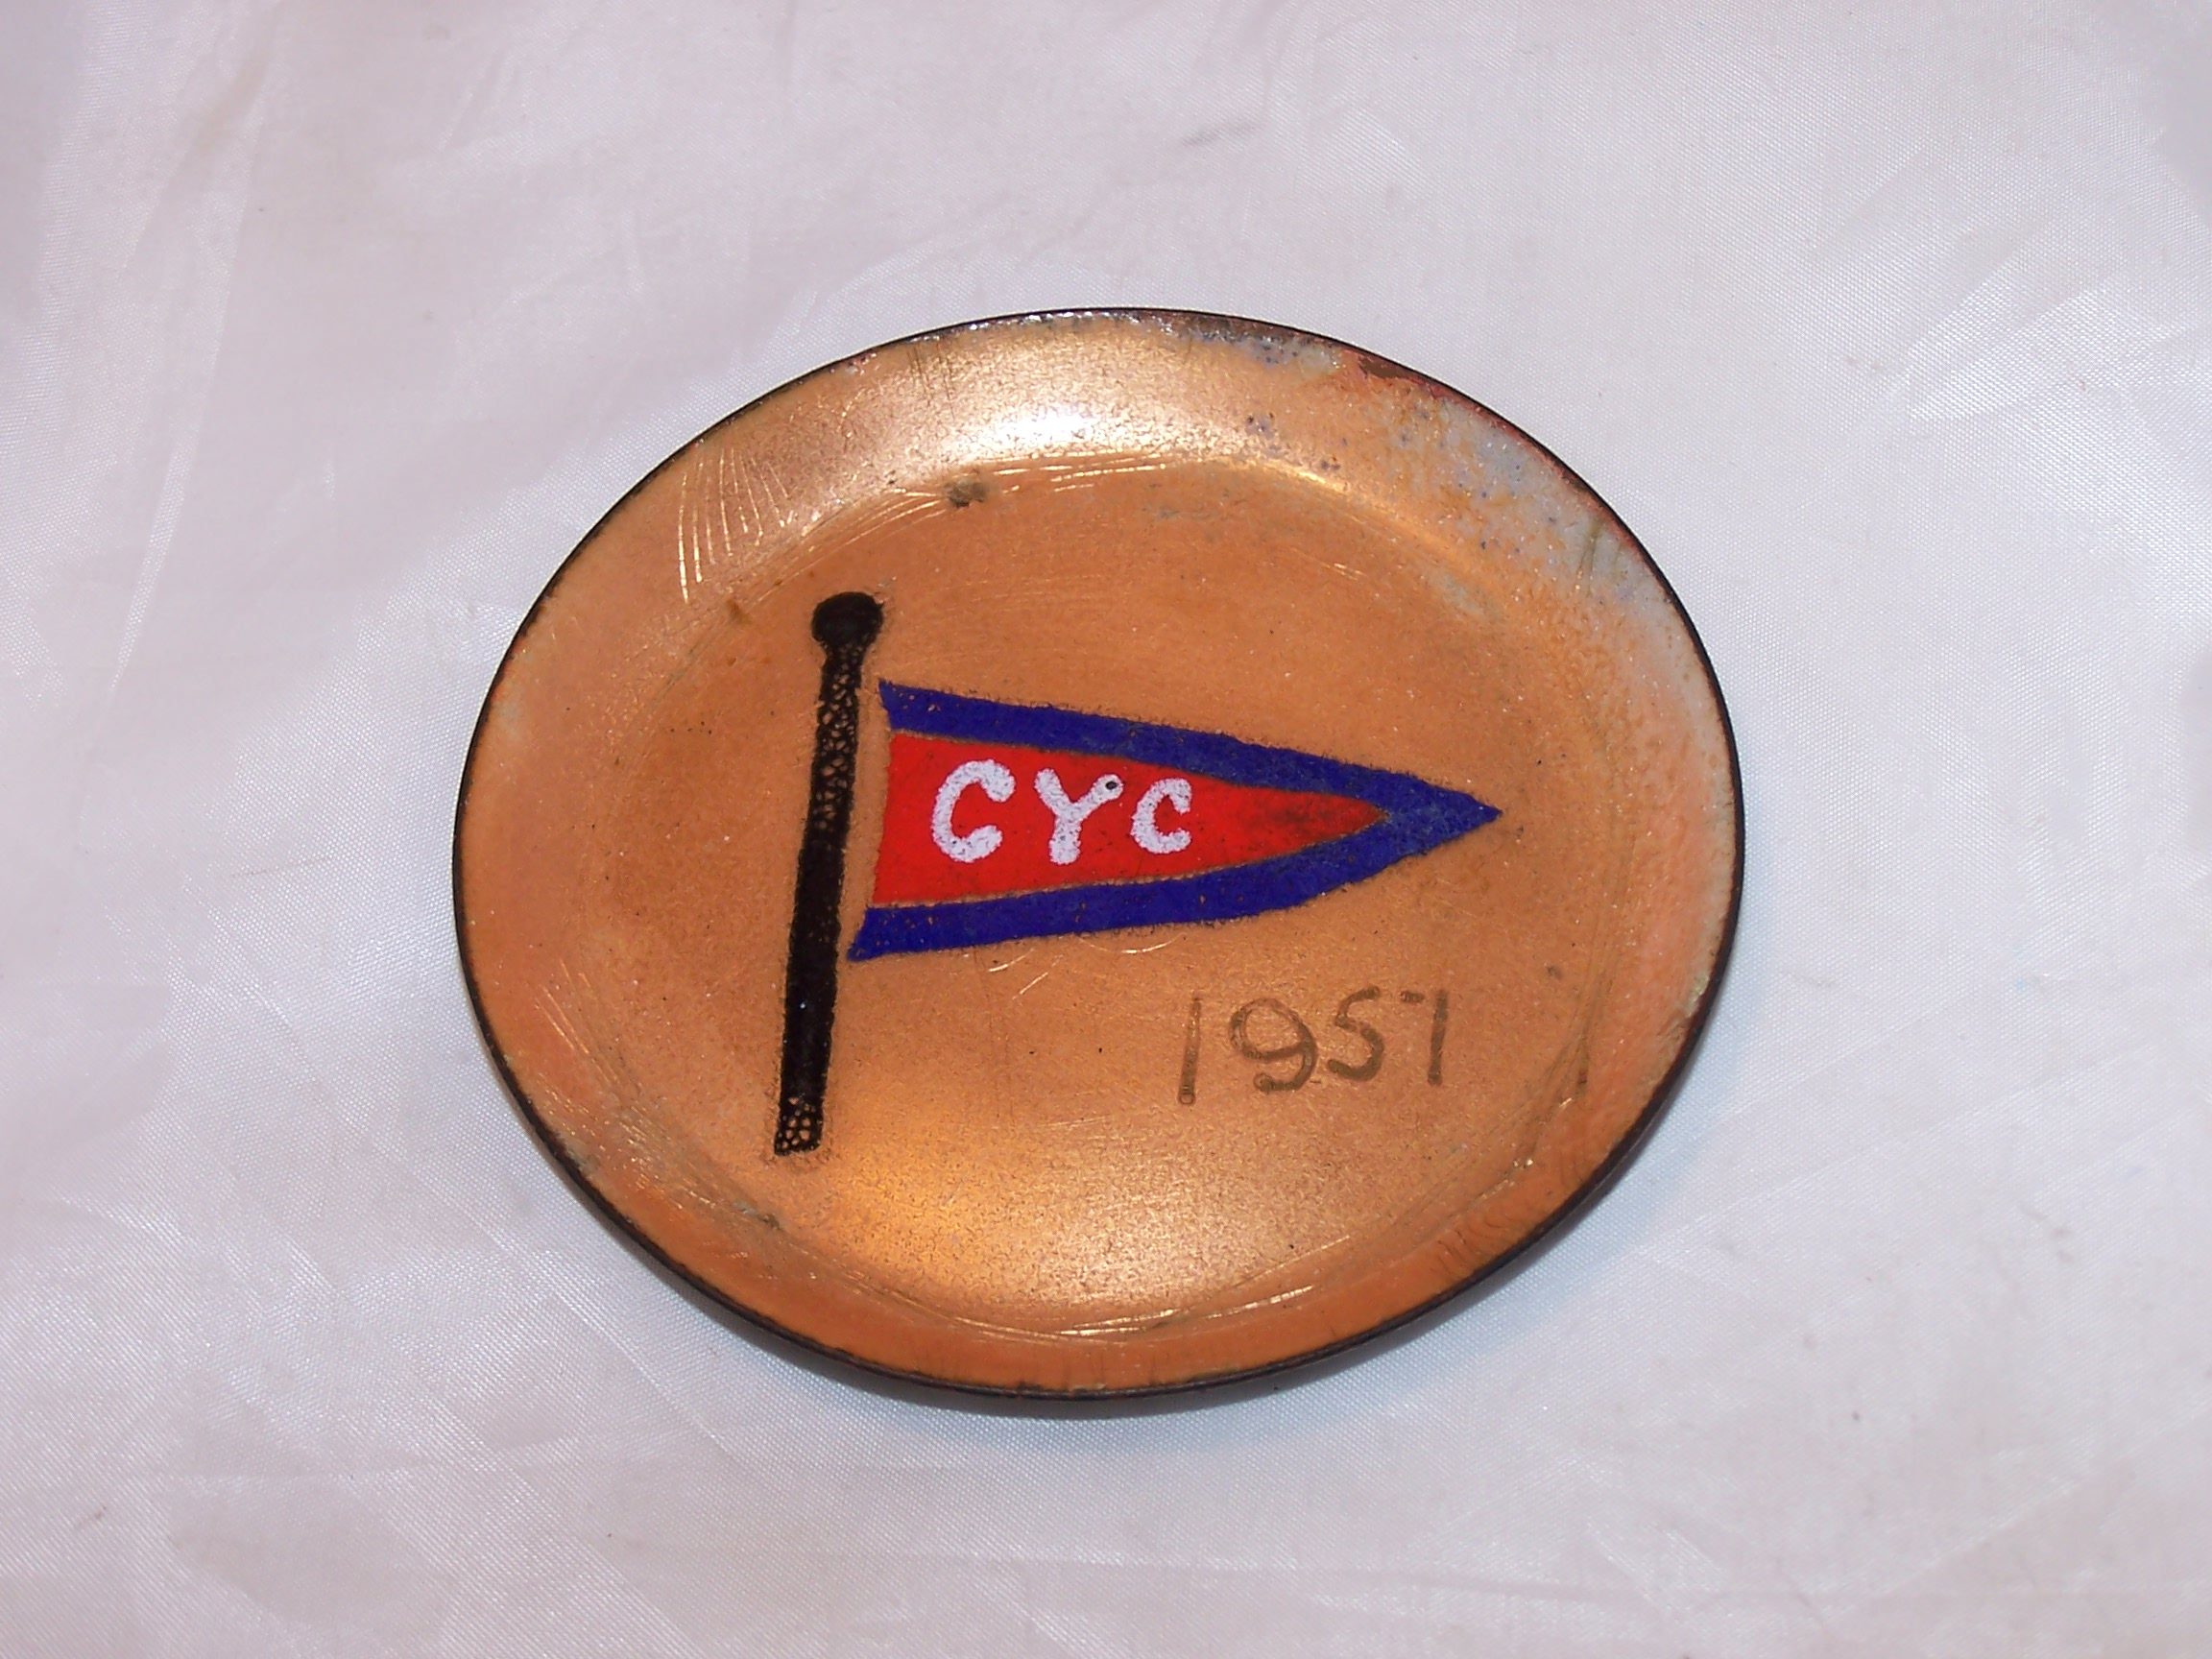 Image 1 of Herb Friedson Signed Enamel Dish, 1957, Cleveland Yachting Club